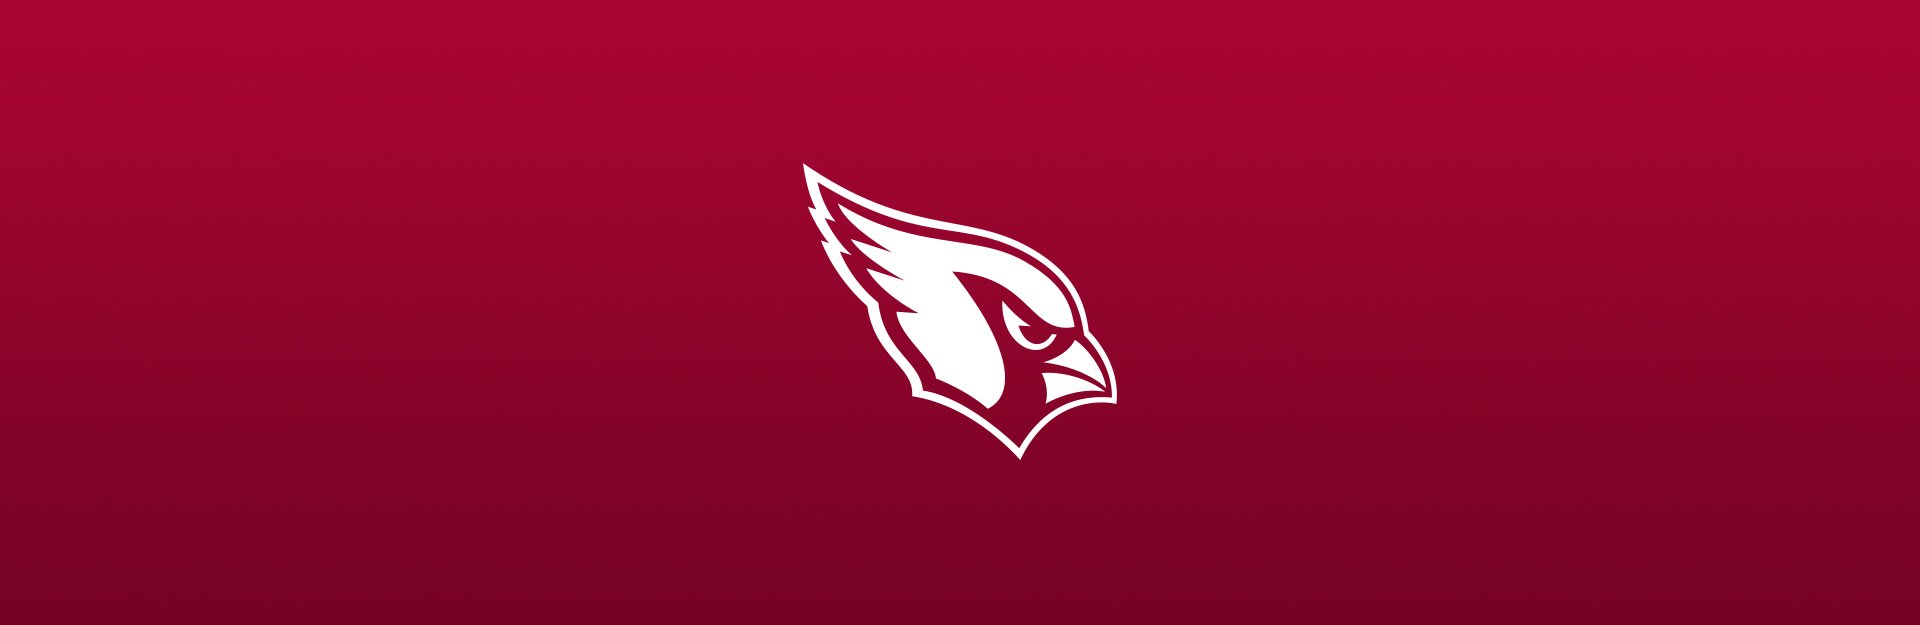 Arizona Cardinals logo on red background